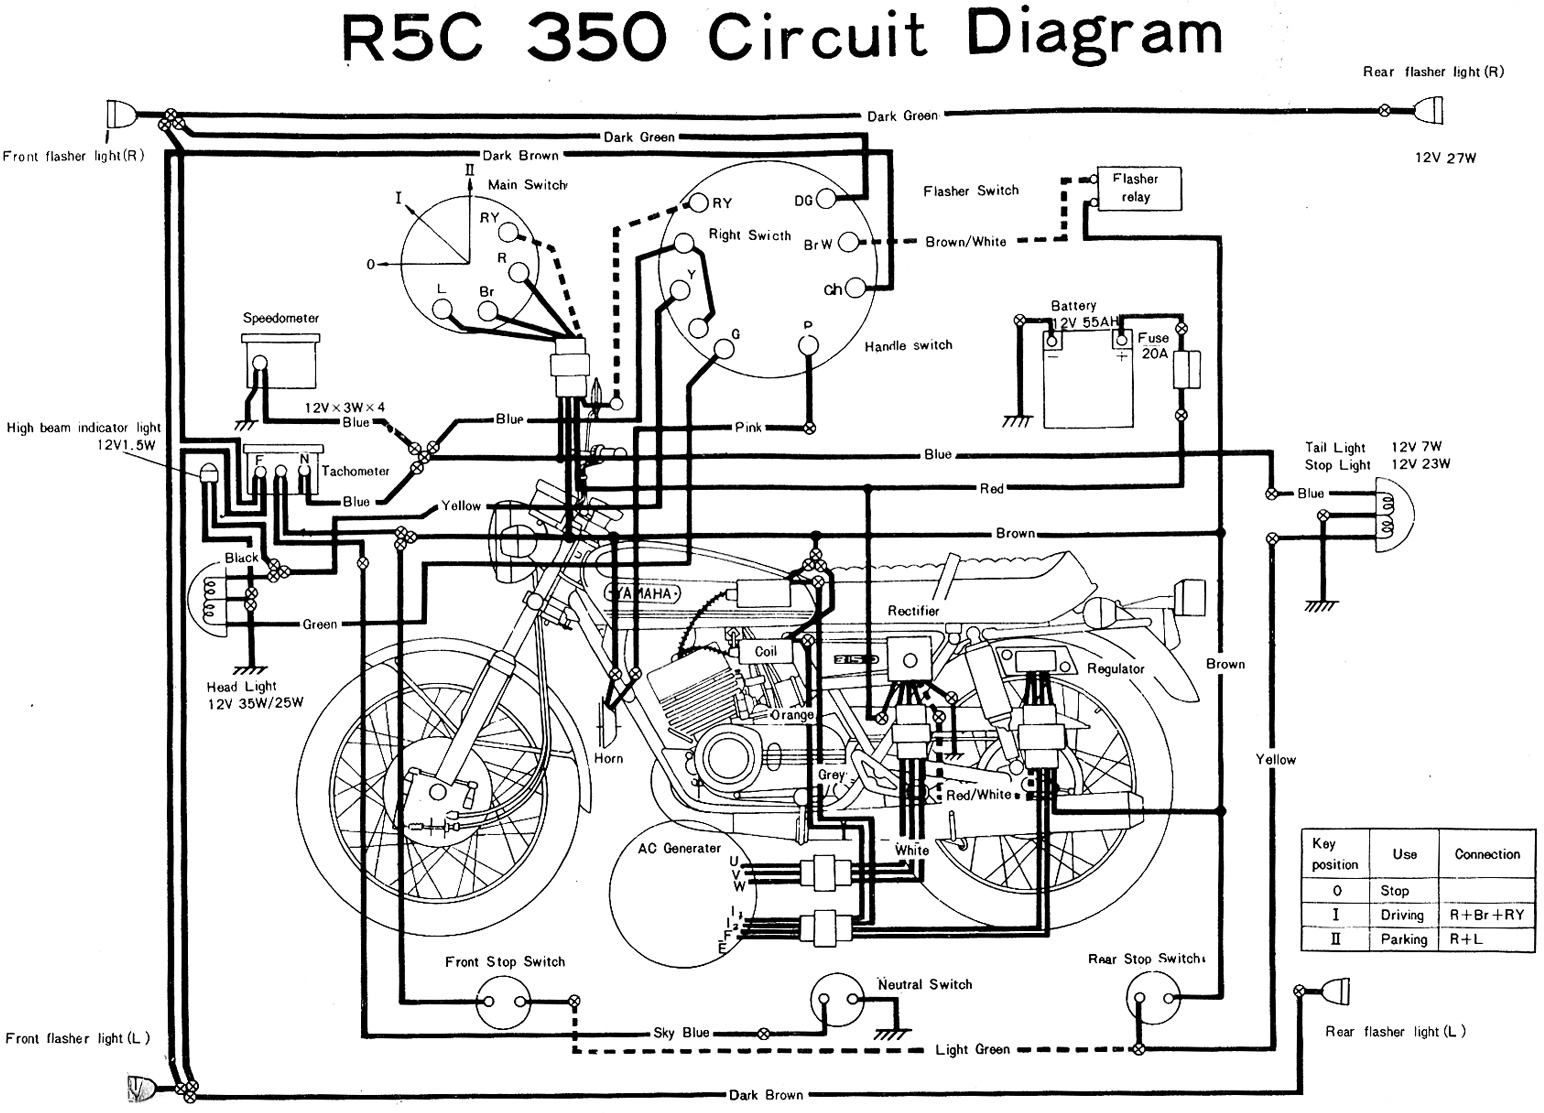 Pocket Rocket Wiring Diagram 1997 - Wiring